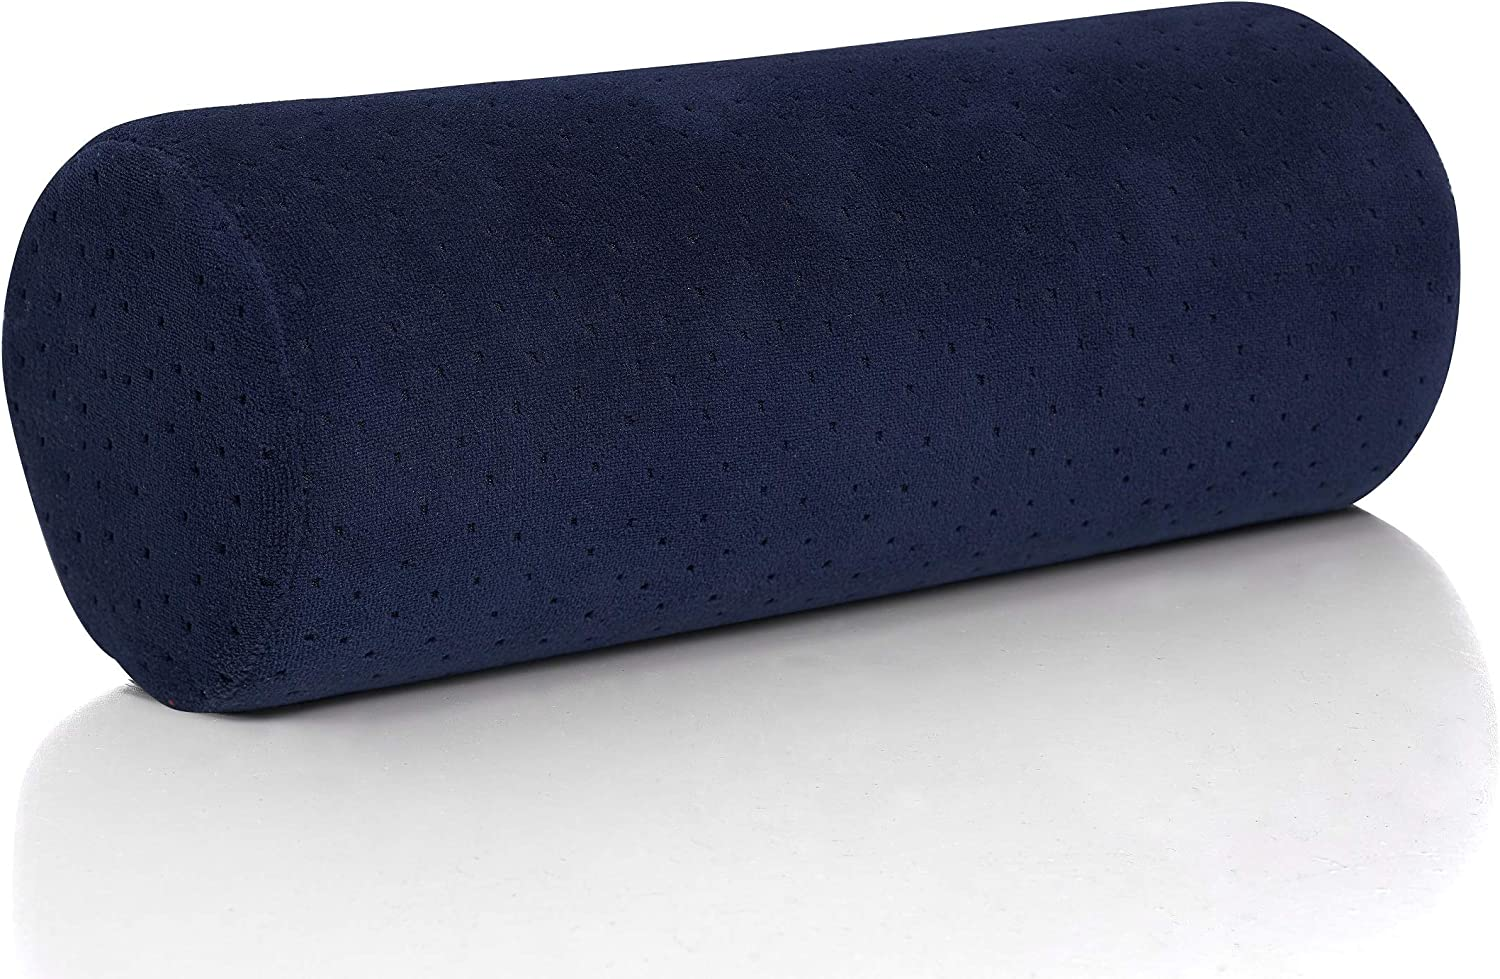 AllSett Health Bamboo Navy Round Cervical Roll Cylinder Bolster Pillow with Removable Washable Cover, Ergonomically Designed for Head, Neck, Back, and Legs || Ideal for Spine and Neck Support